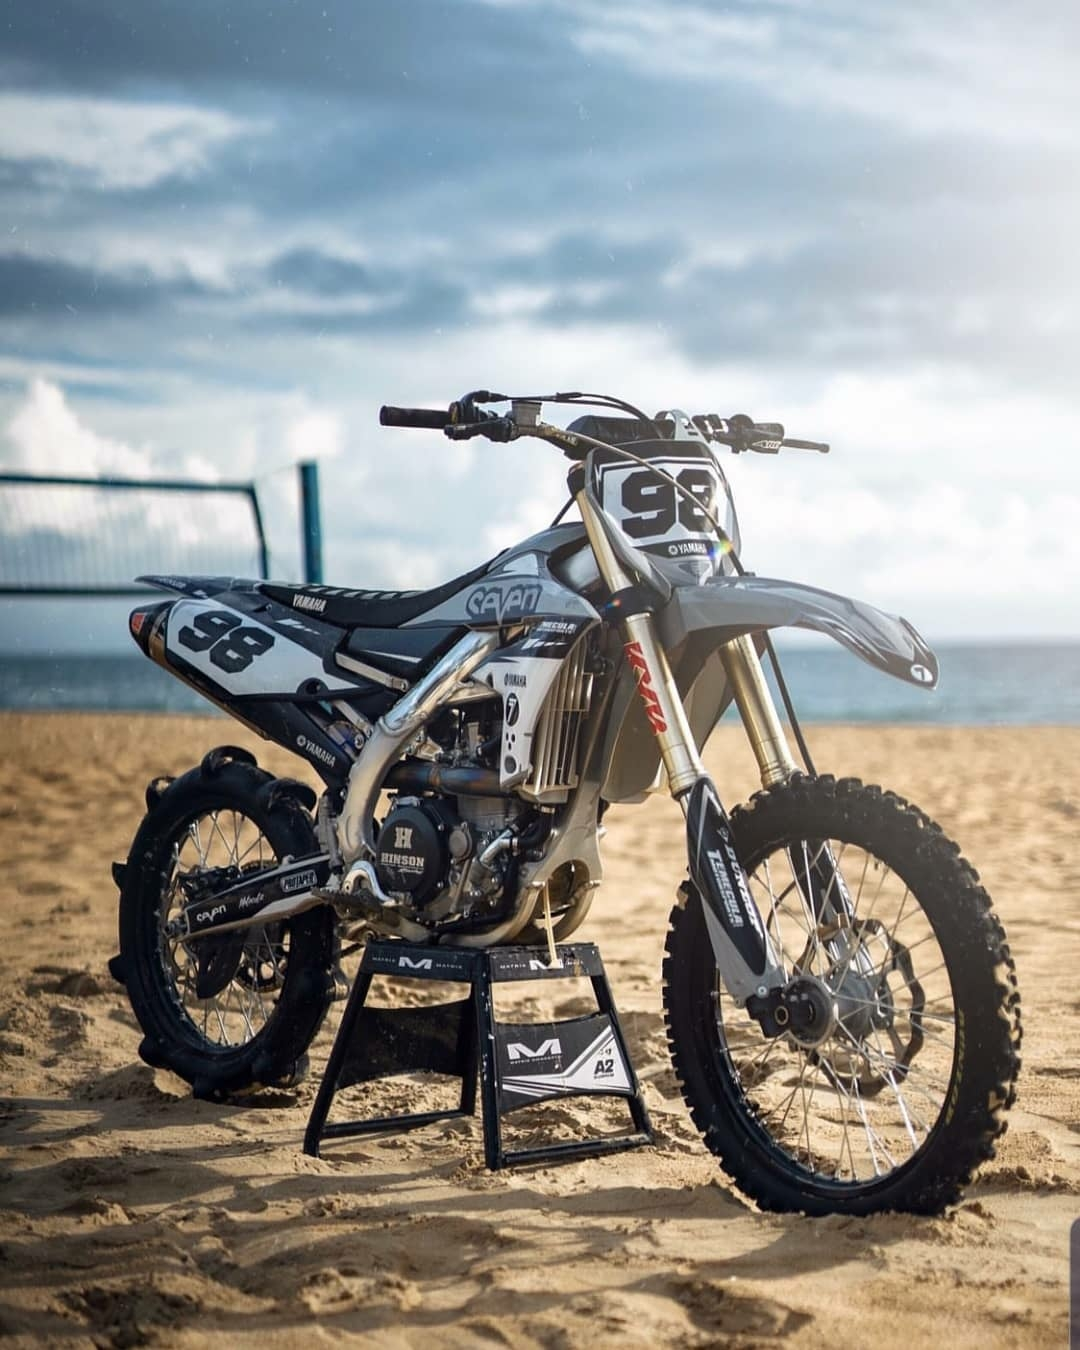 Yamaha dirt bike on beach